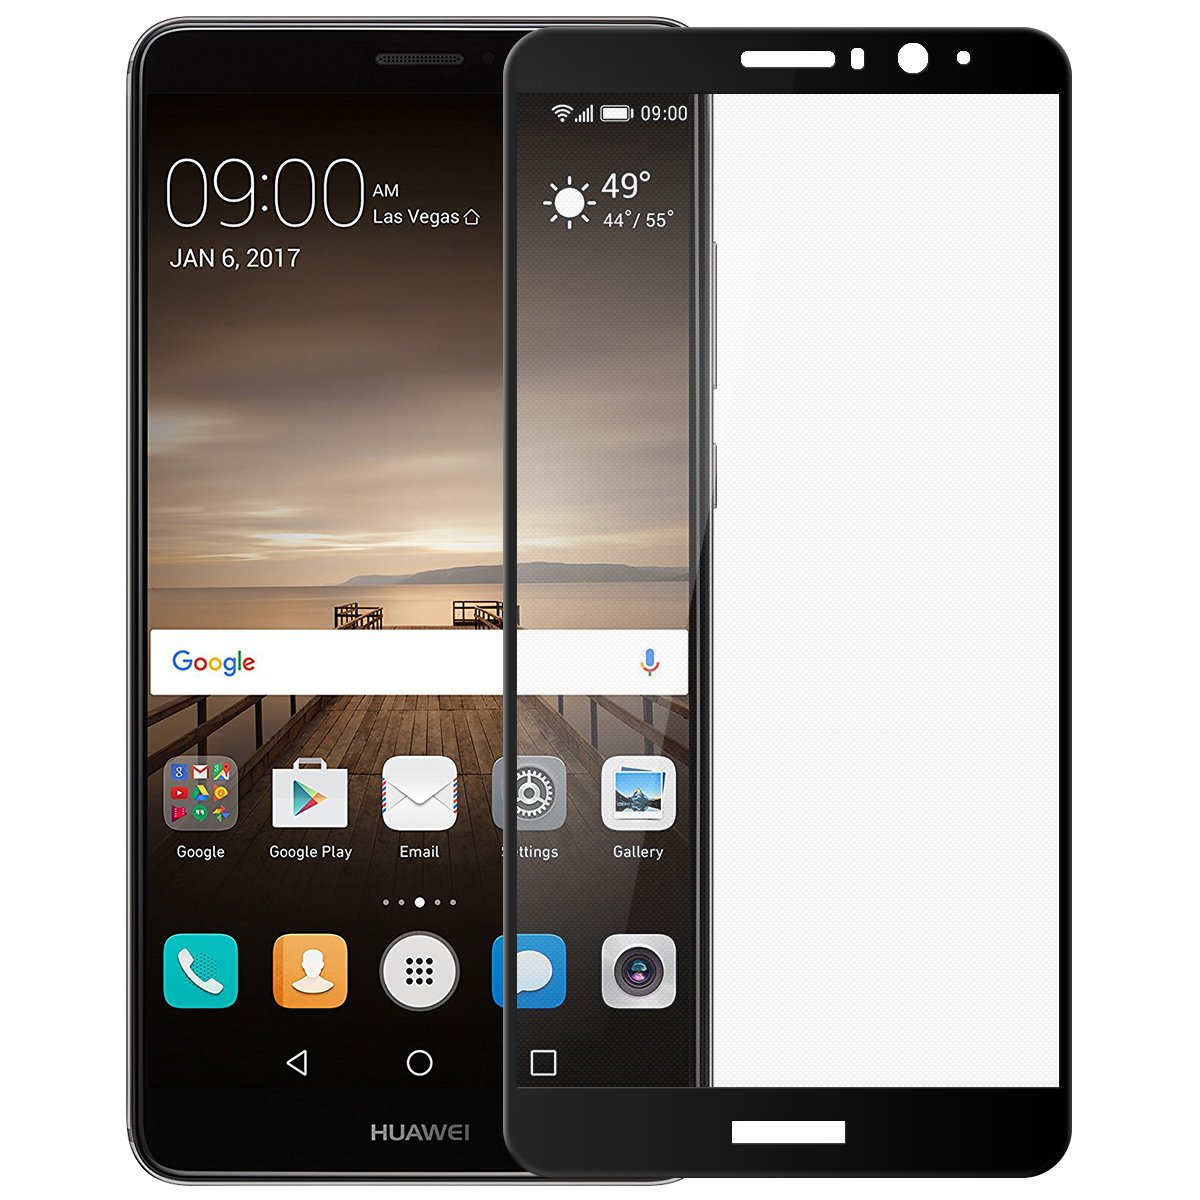 unidades Huawei Mate Protector de pantalla wellead Full Screen tanque Curved Cristal